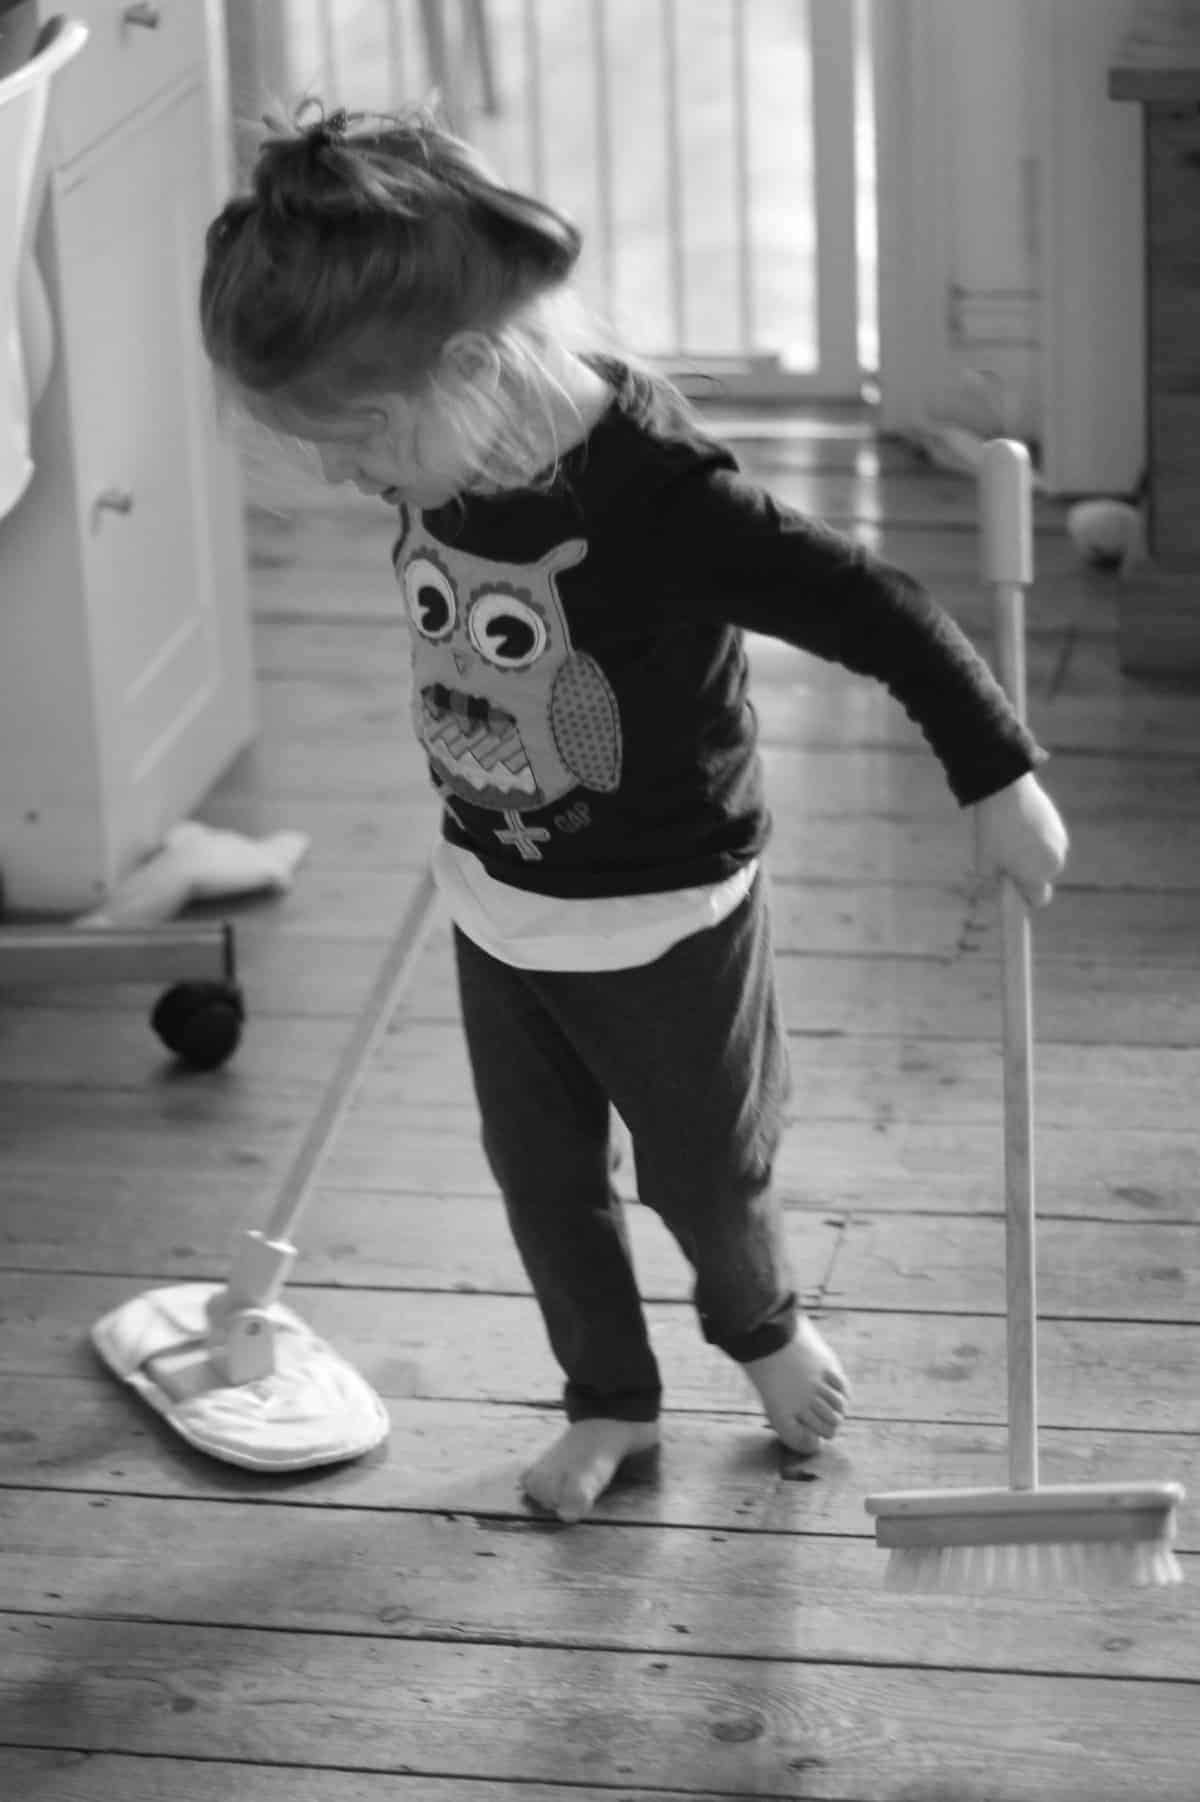 Sweeping {The Ordinary Moments}